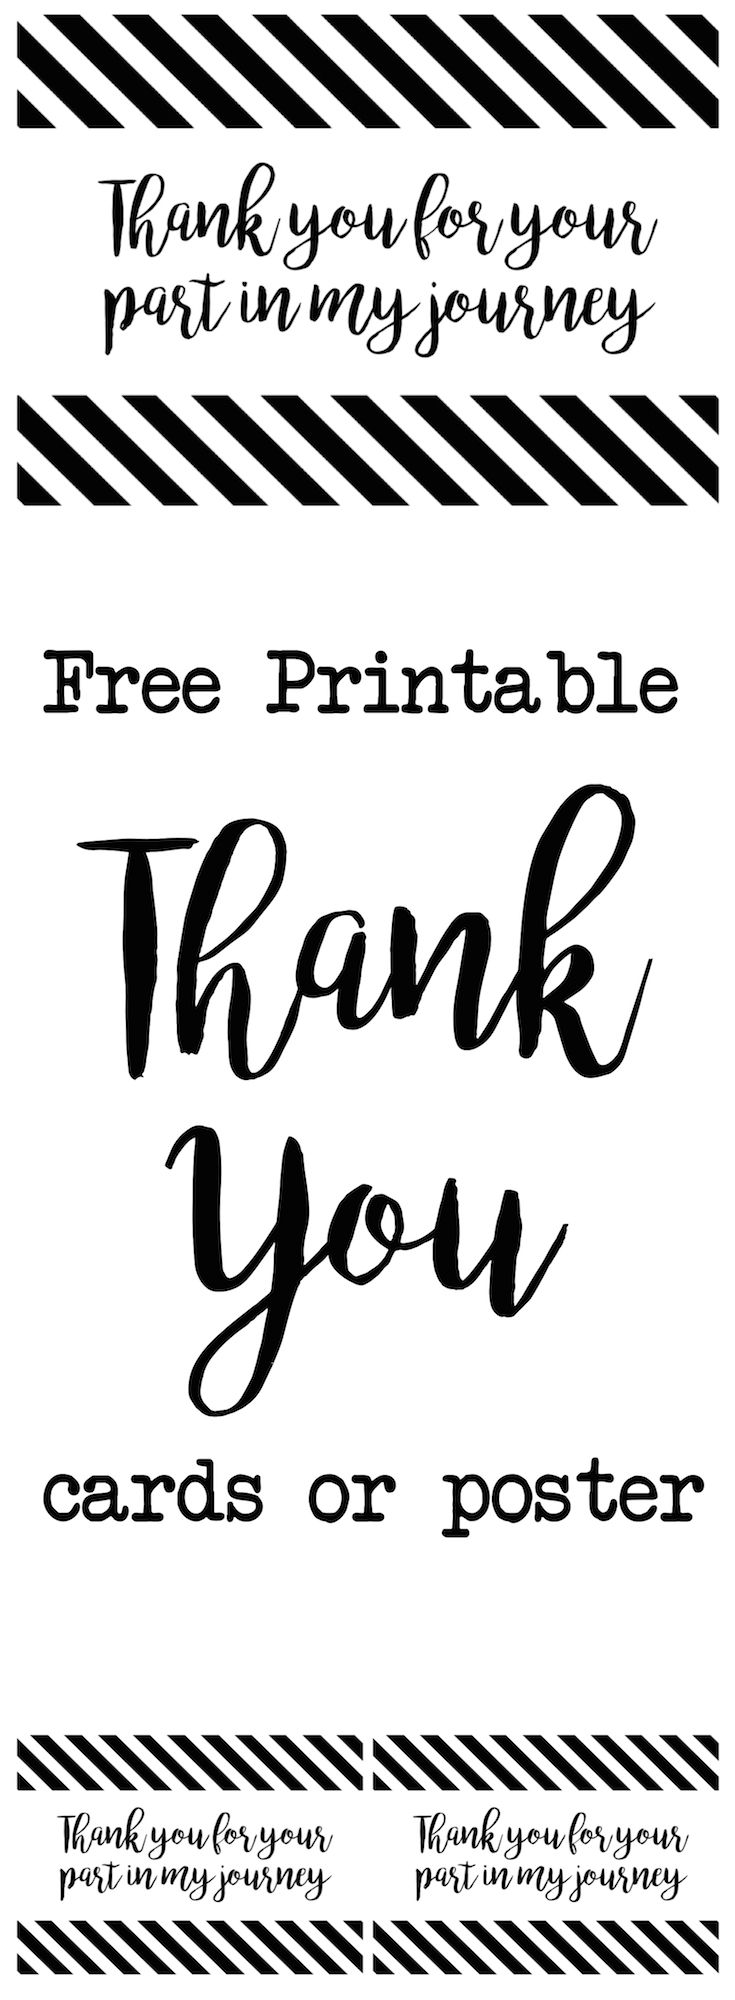 Thank You cards or poster free printable. Thank you for your part in my journey. Print as a poster for a graduation party or as thank you cards to give to all of your teachers and friends who had a profound effect on you.